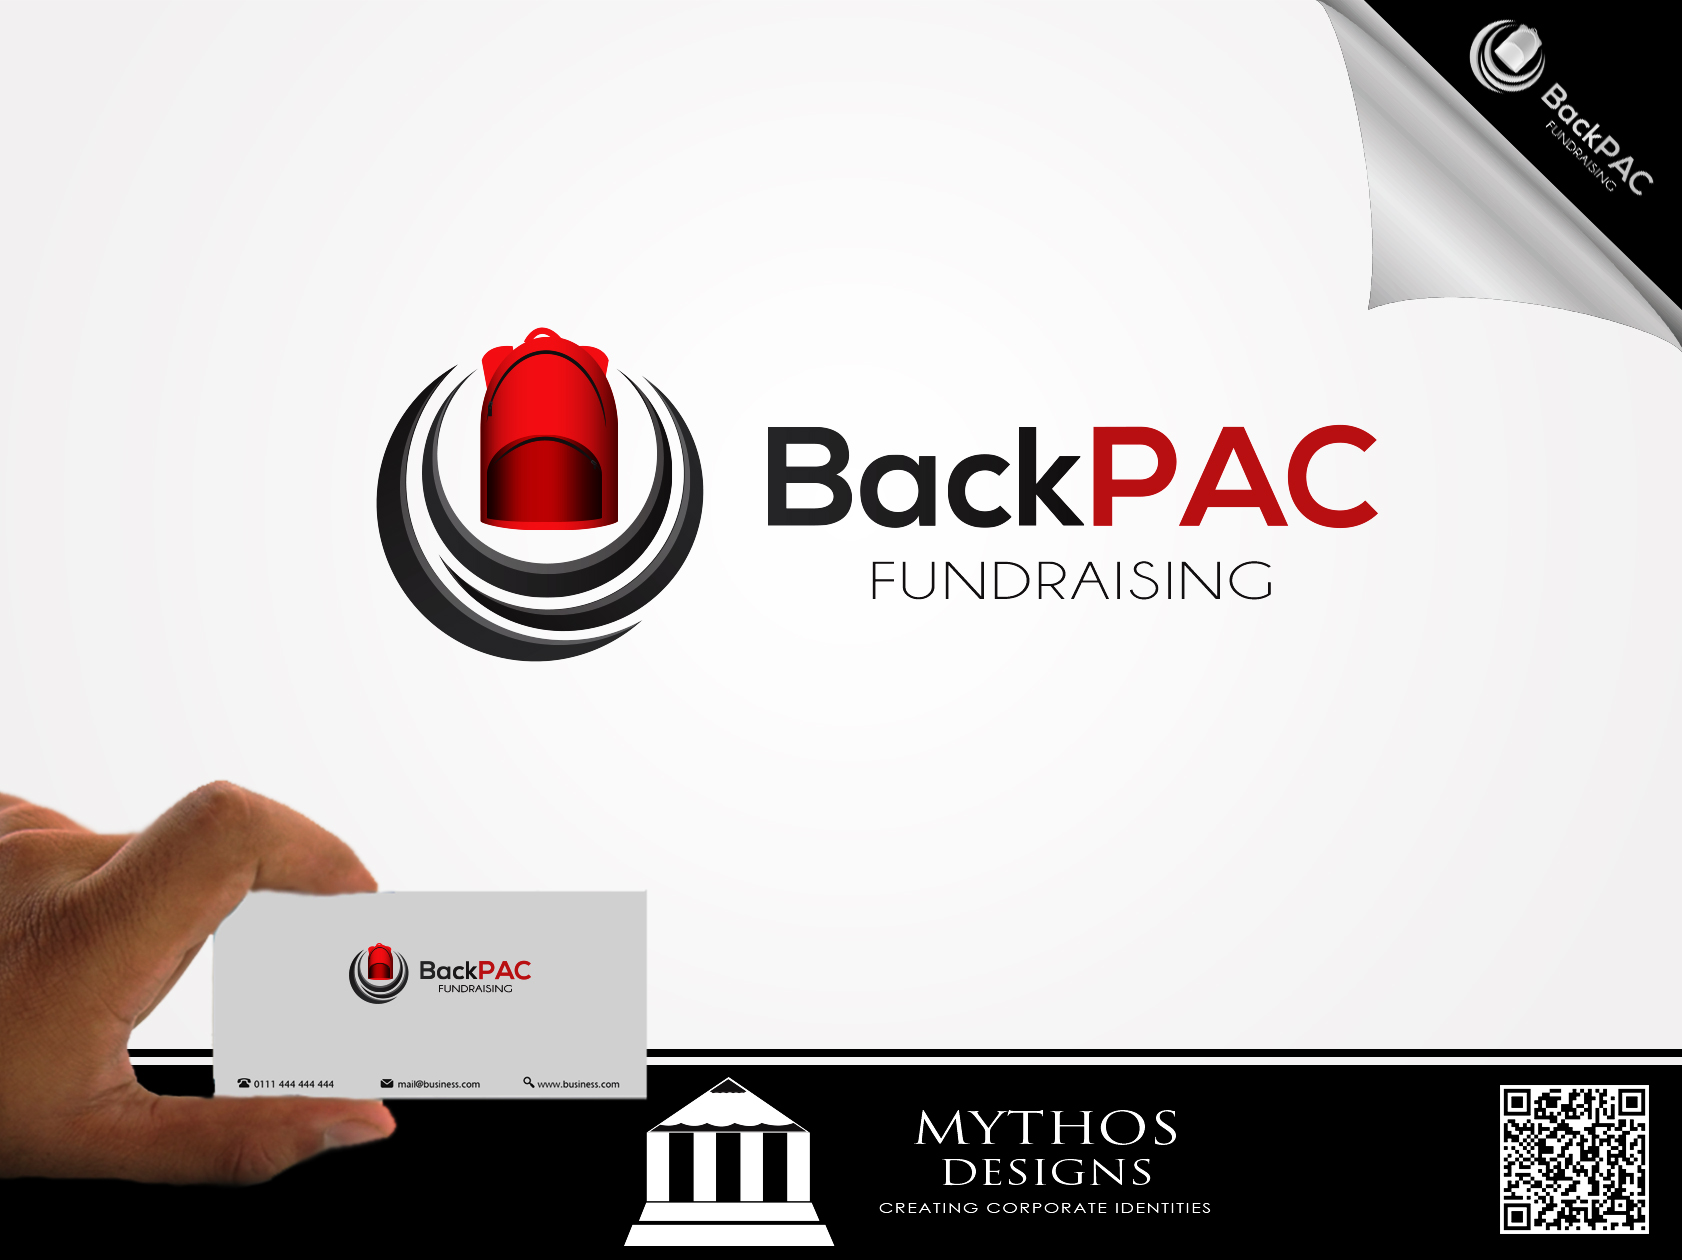 Logo Design by Mythos Designs - Entry No. 65 in the Logo Design Contest Imaginative Logo Design for BackPAC Fundraising.